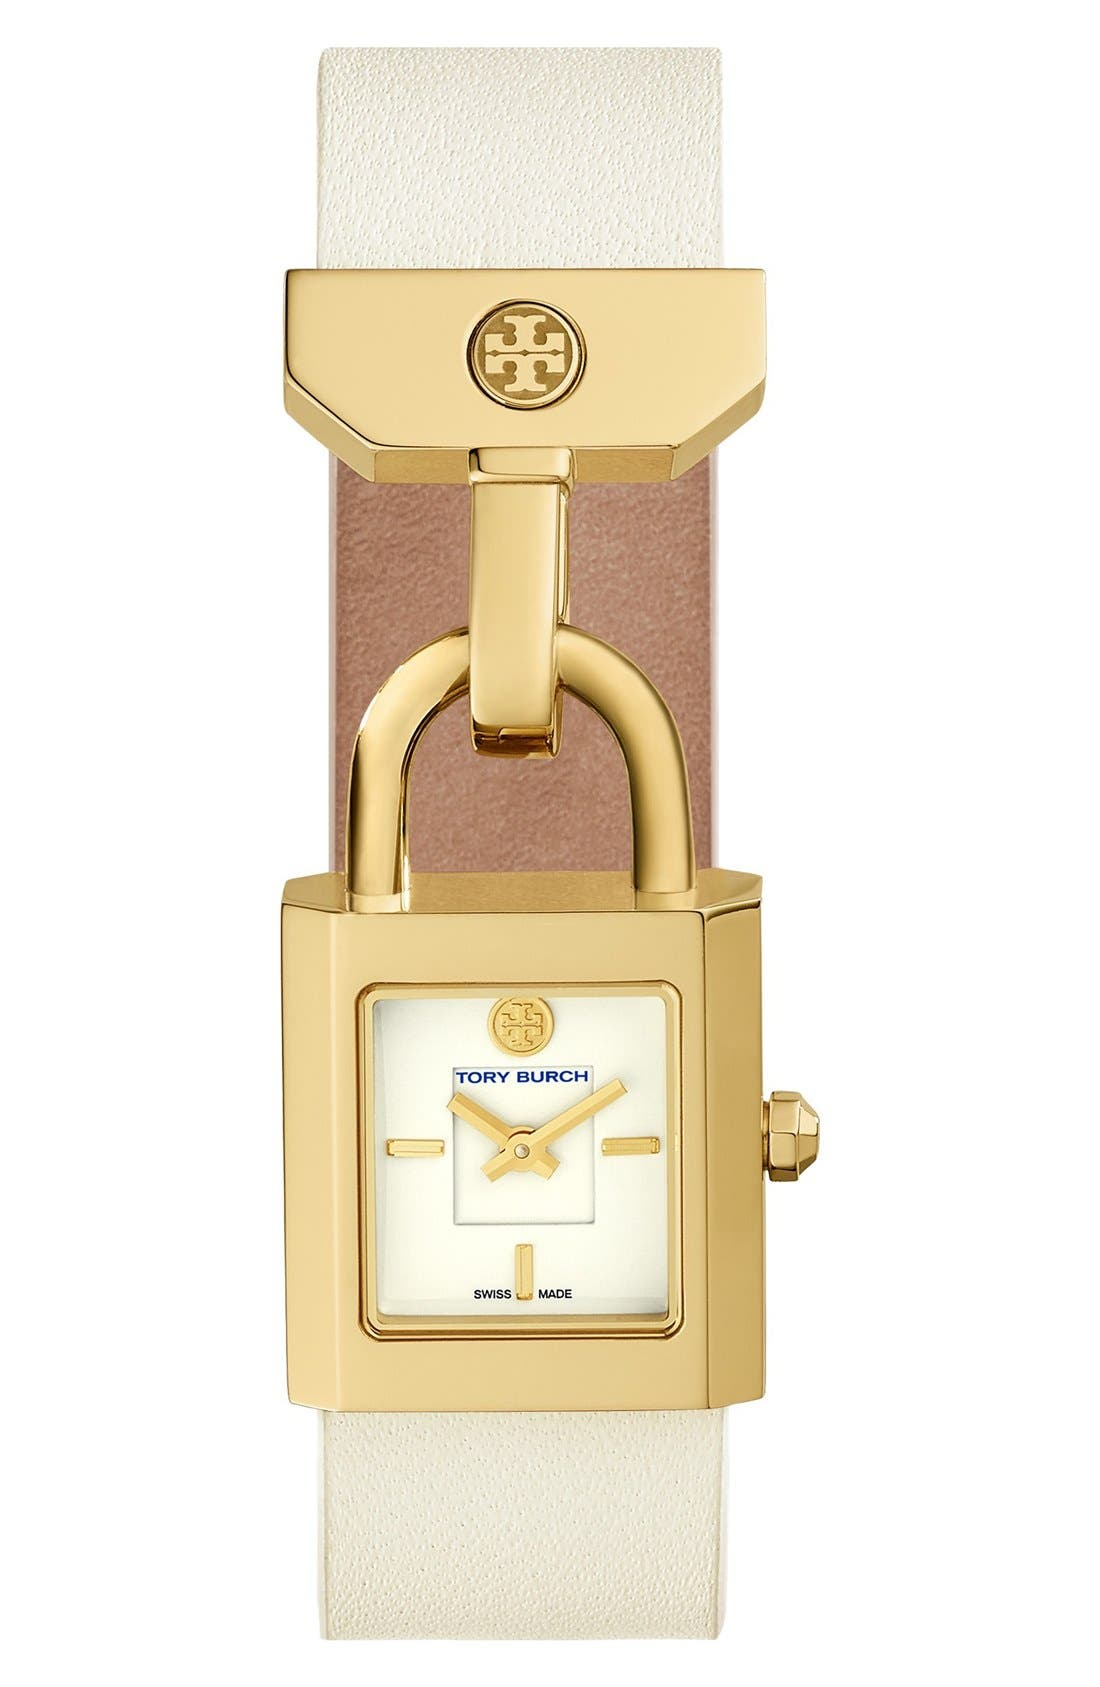 Main Image - Tory Burch 'Surrey' Leather Strap Watch, 22mm x 24mm